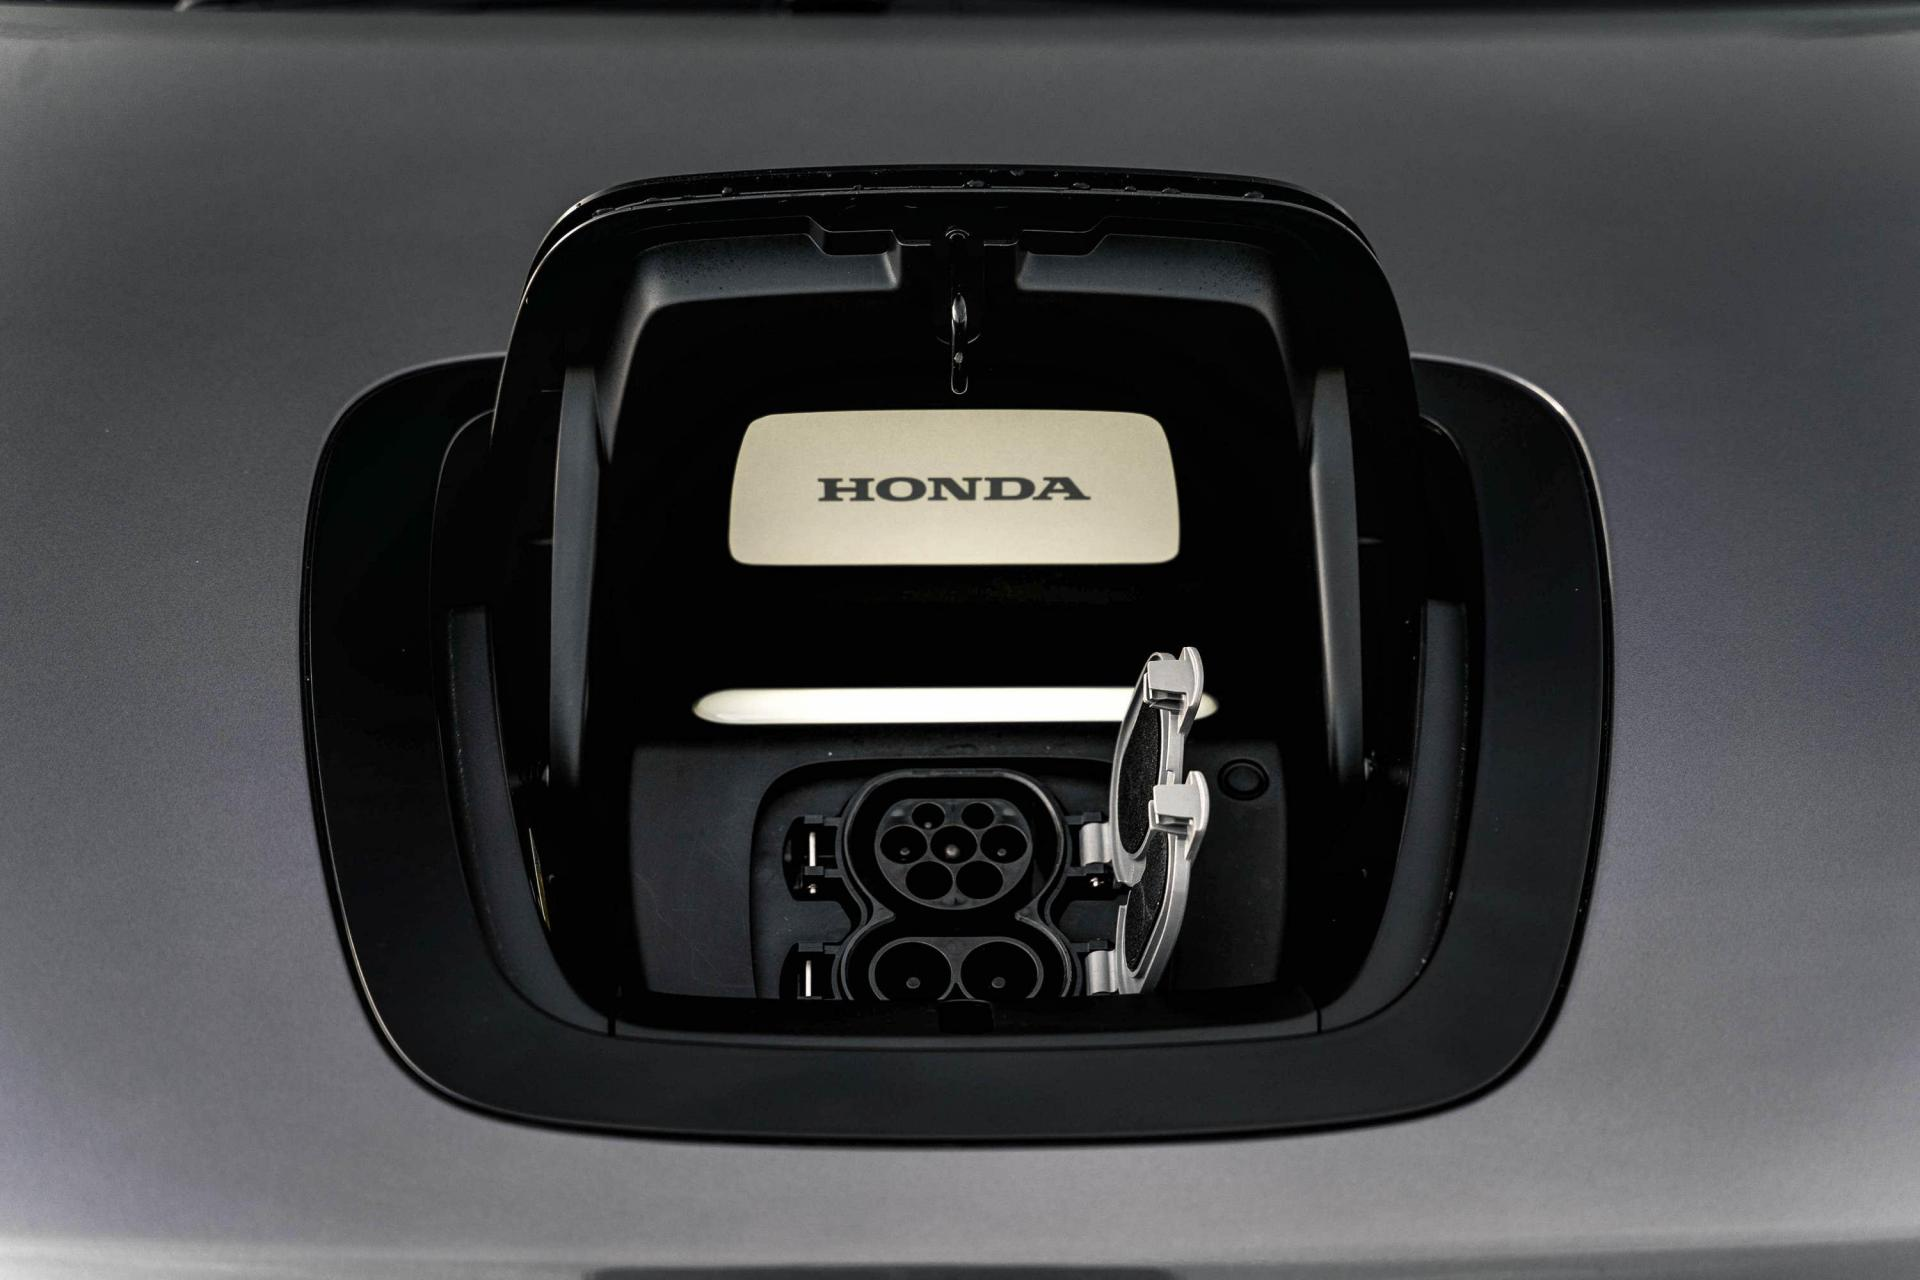 Charging is via a port at the very front of the car.